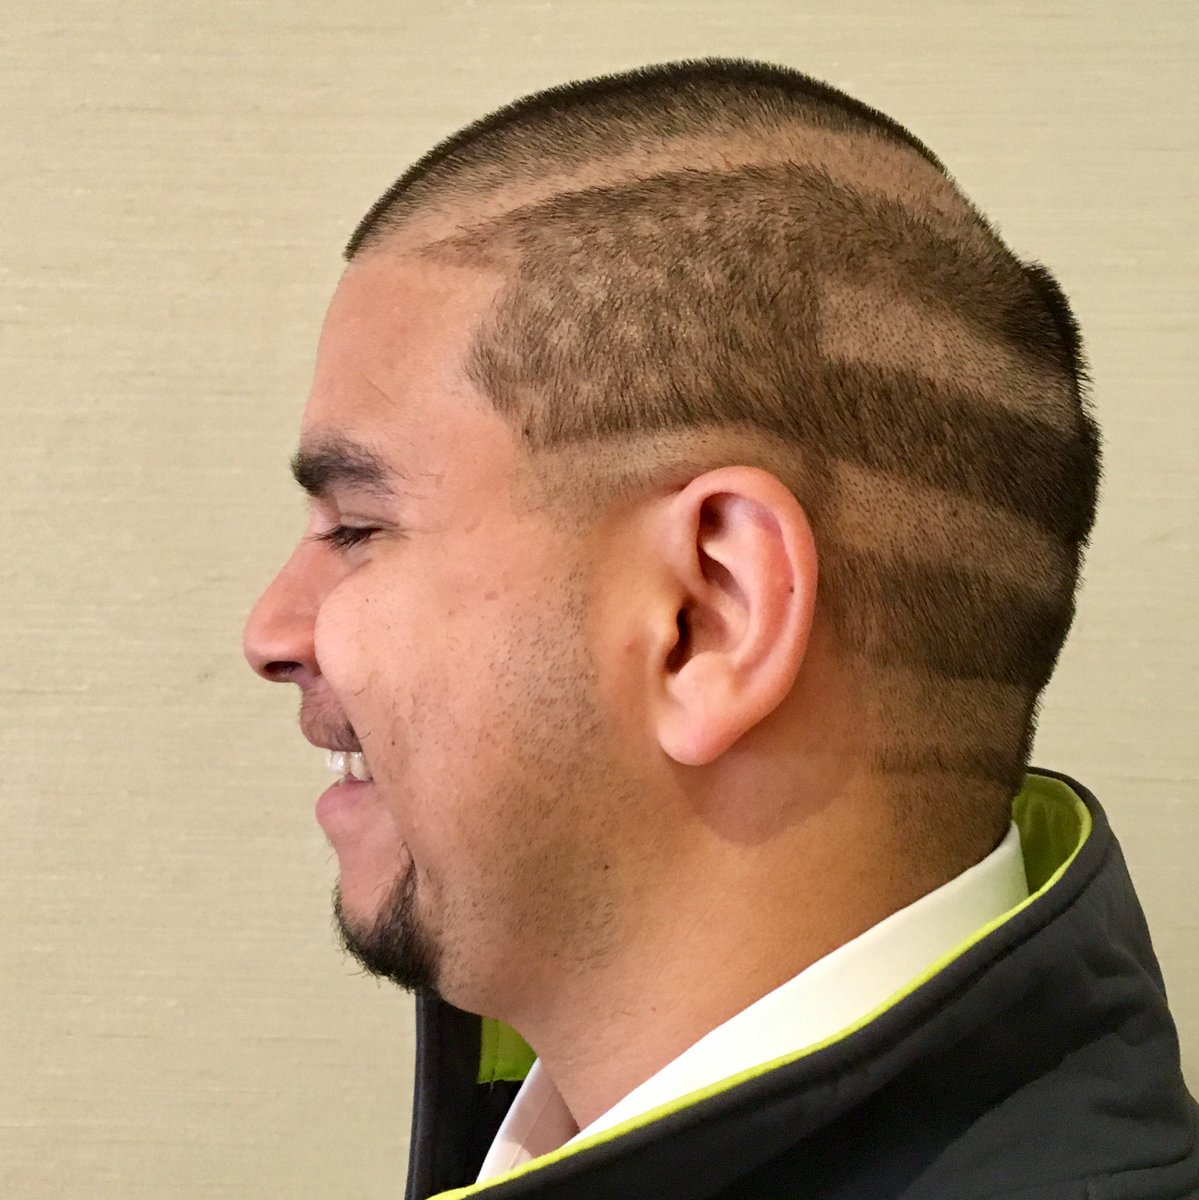 Special Olympics Usa On Twitter Check Out The New Haircut Vincent